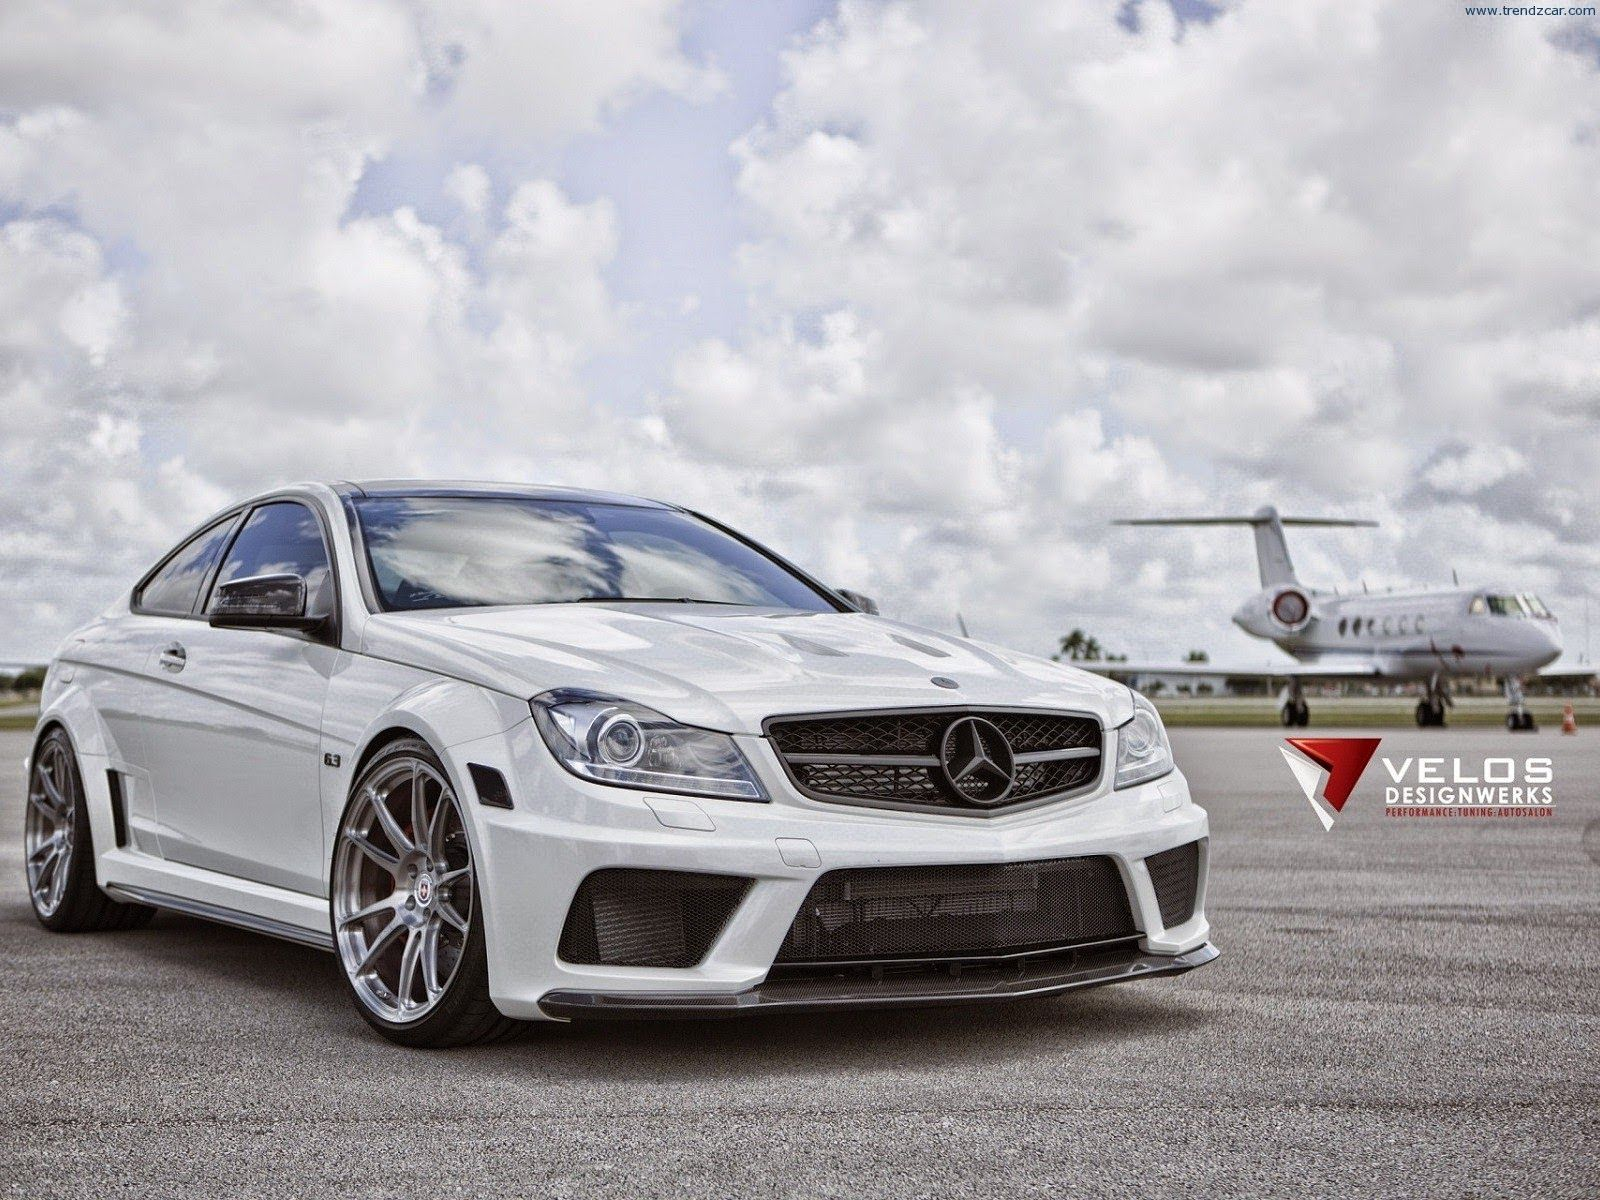 mercedes benz c63 amg black series by velos designwerks - Mercedes Benz C63 Amg Black Series White